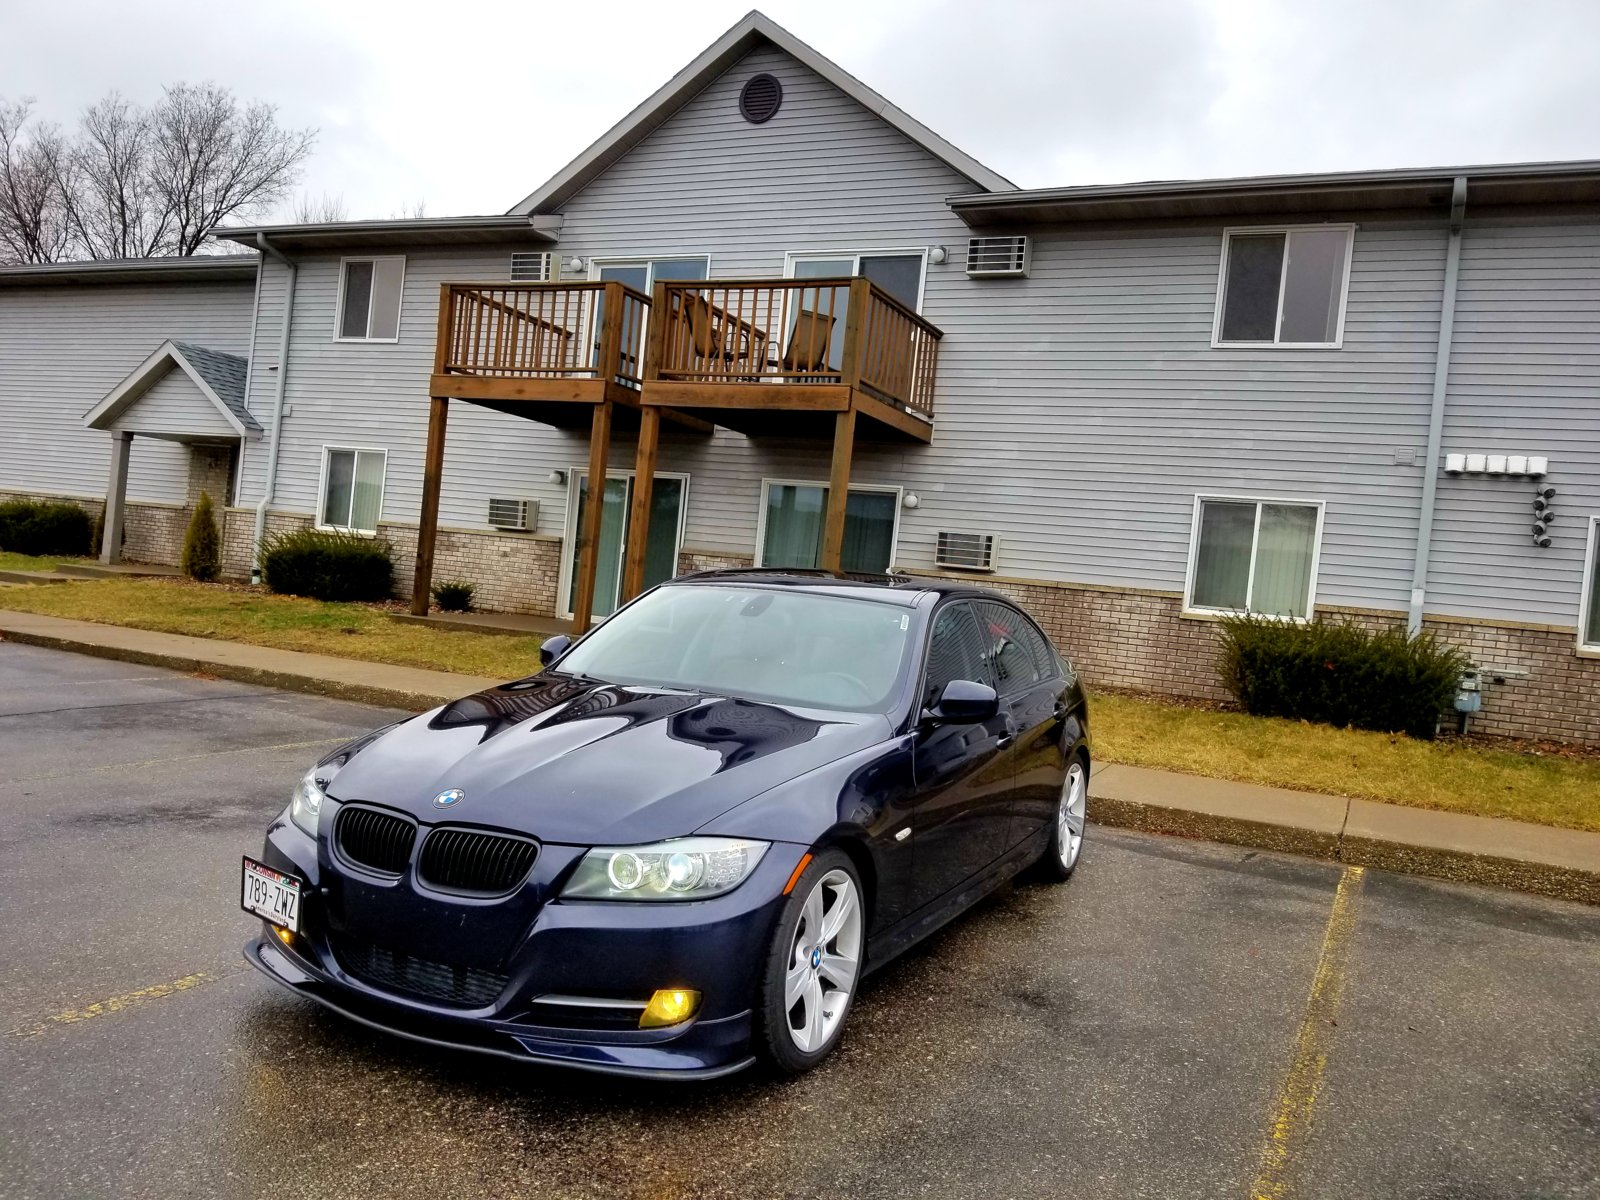 Mhd stage 2+ questions | BMW Forums - SpoolStreet